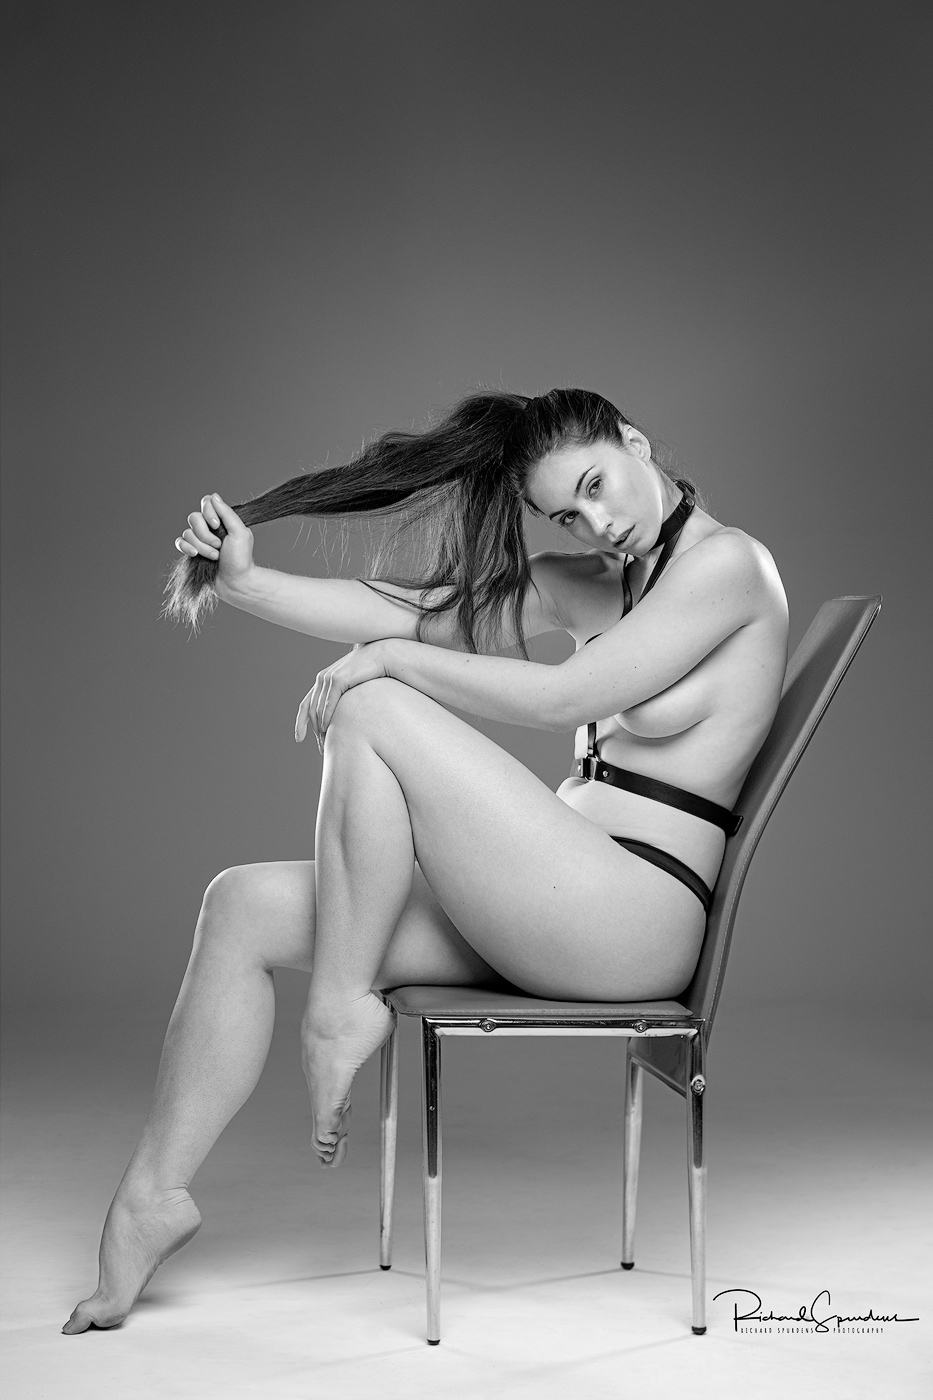 monochrome image of model elle beth wearing a simple black leather harness and posing on a modern metal chair holding her long hair in one hand and the other resting on her knee looking towards the camera